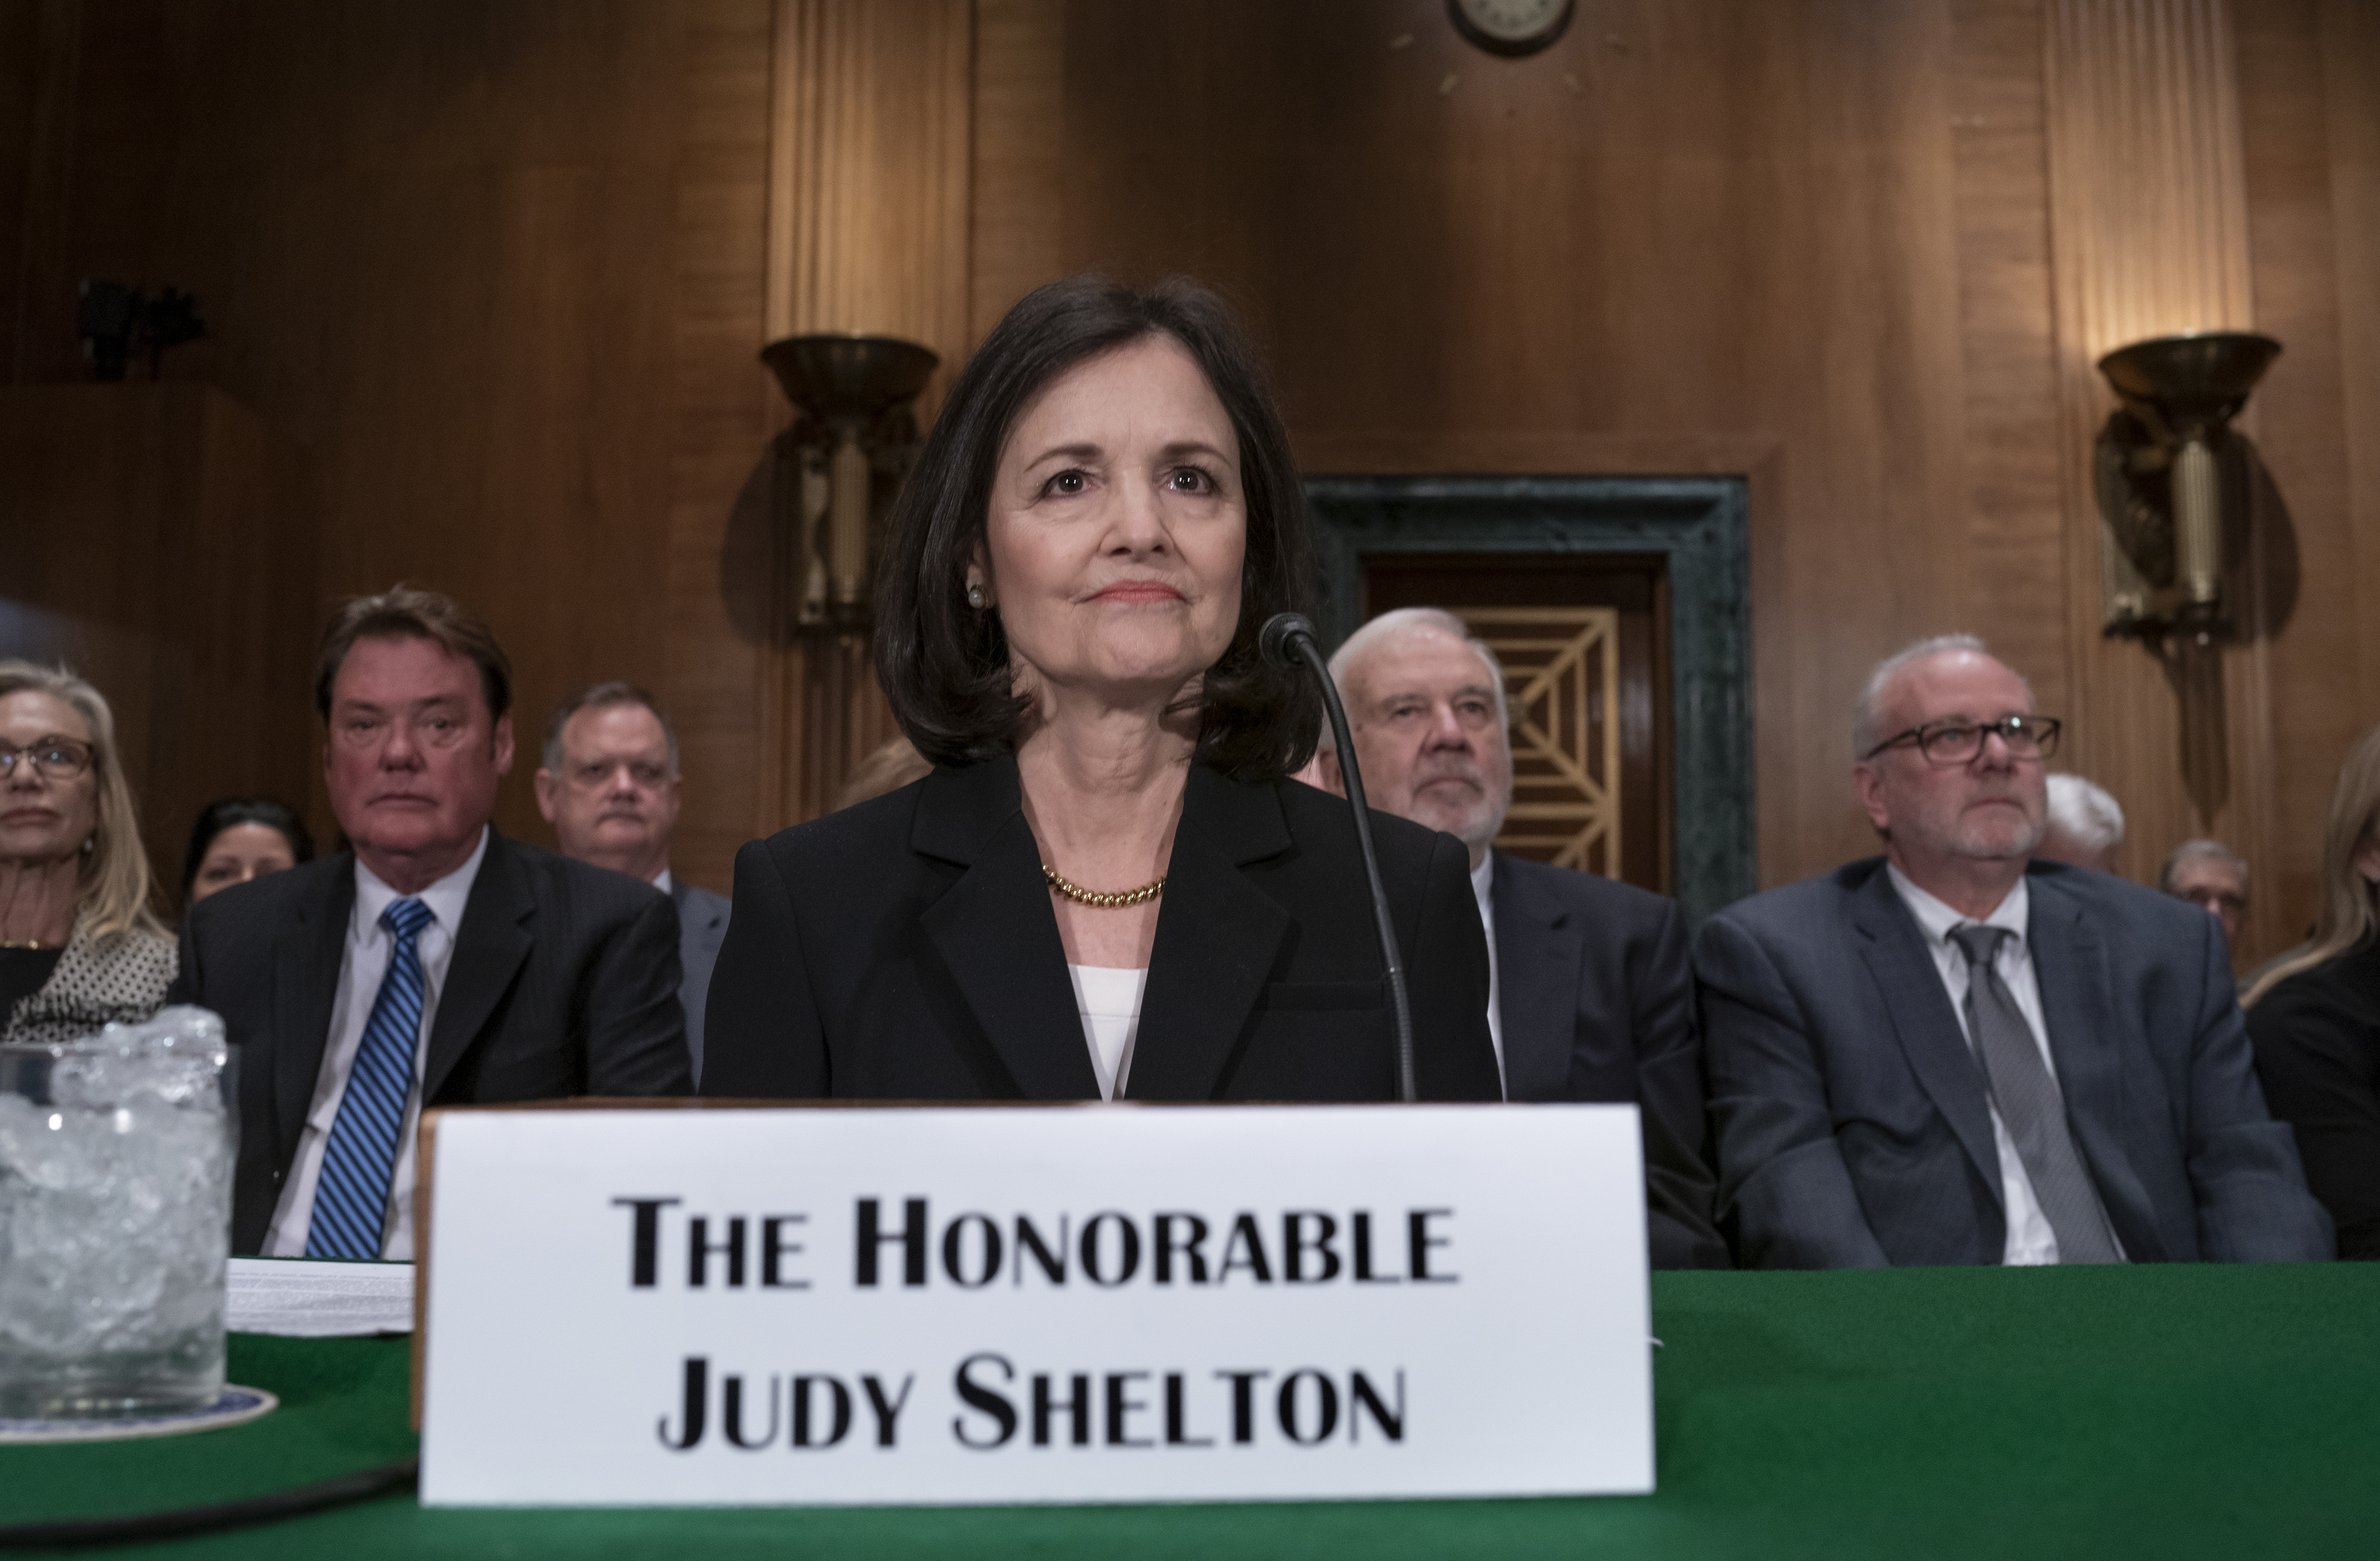 President Donald Trump's nominee to the Federal Reserve, Judy Shelton, appears before the Senate Banking Committee for a confirmation hearing, on Capitol Hill in Washington, Thursday, Feb. 13, 2020. (AP Photo/J. Scott Applewhite)